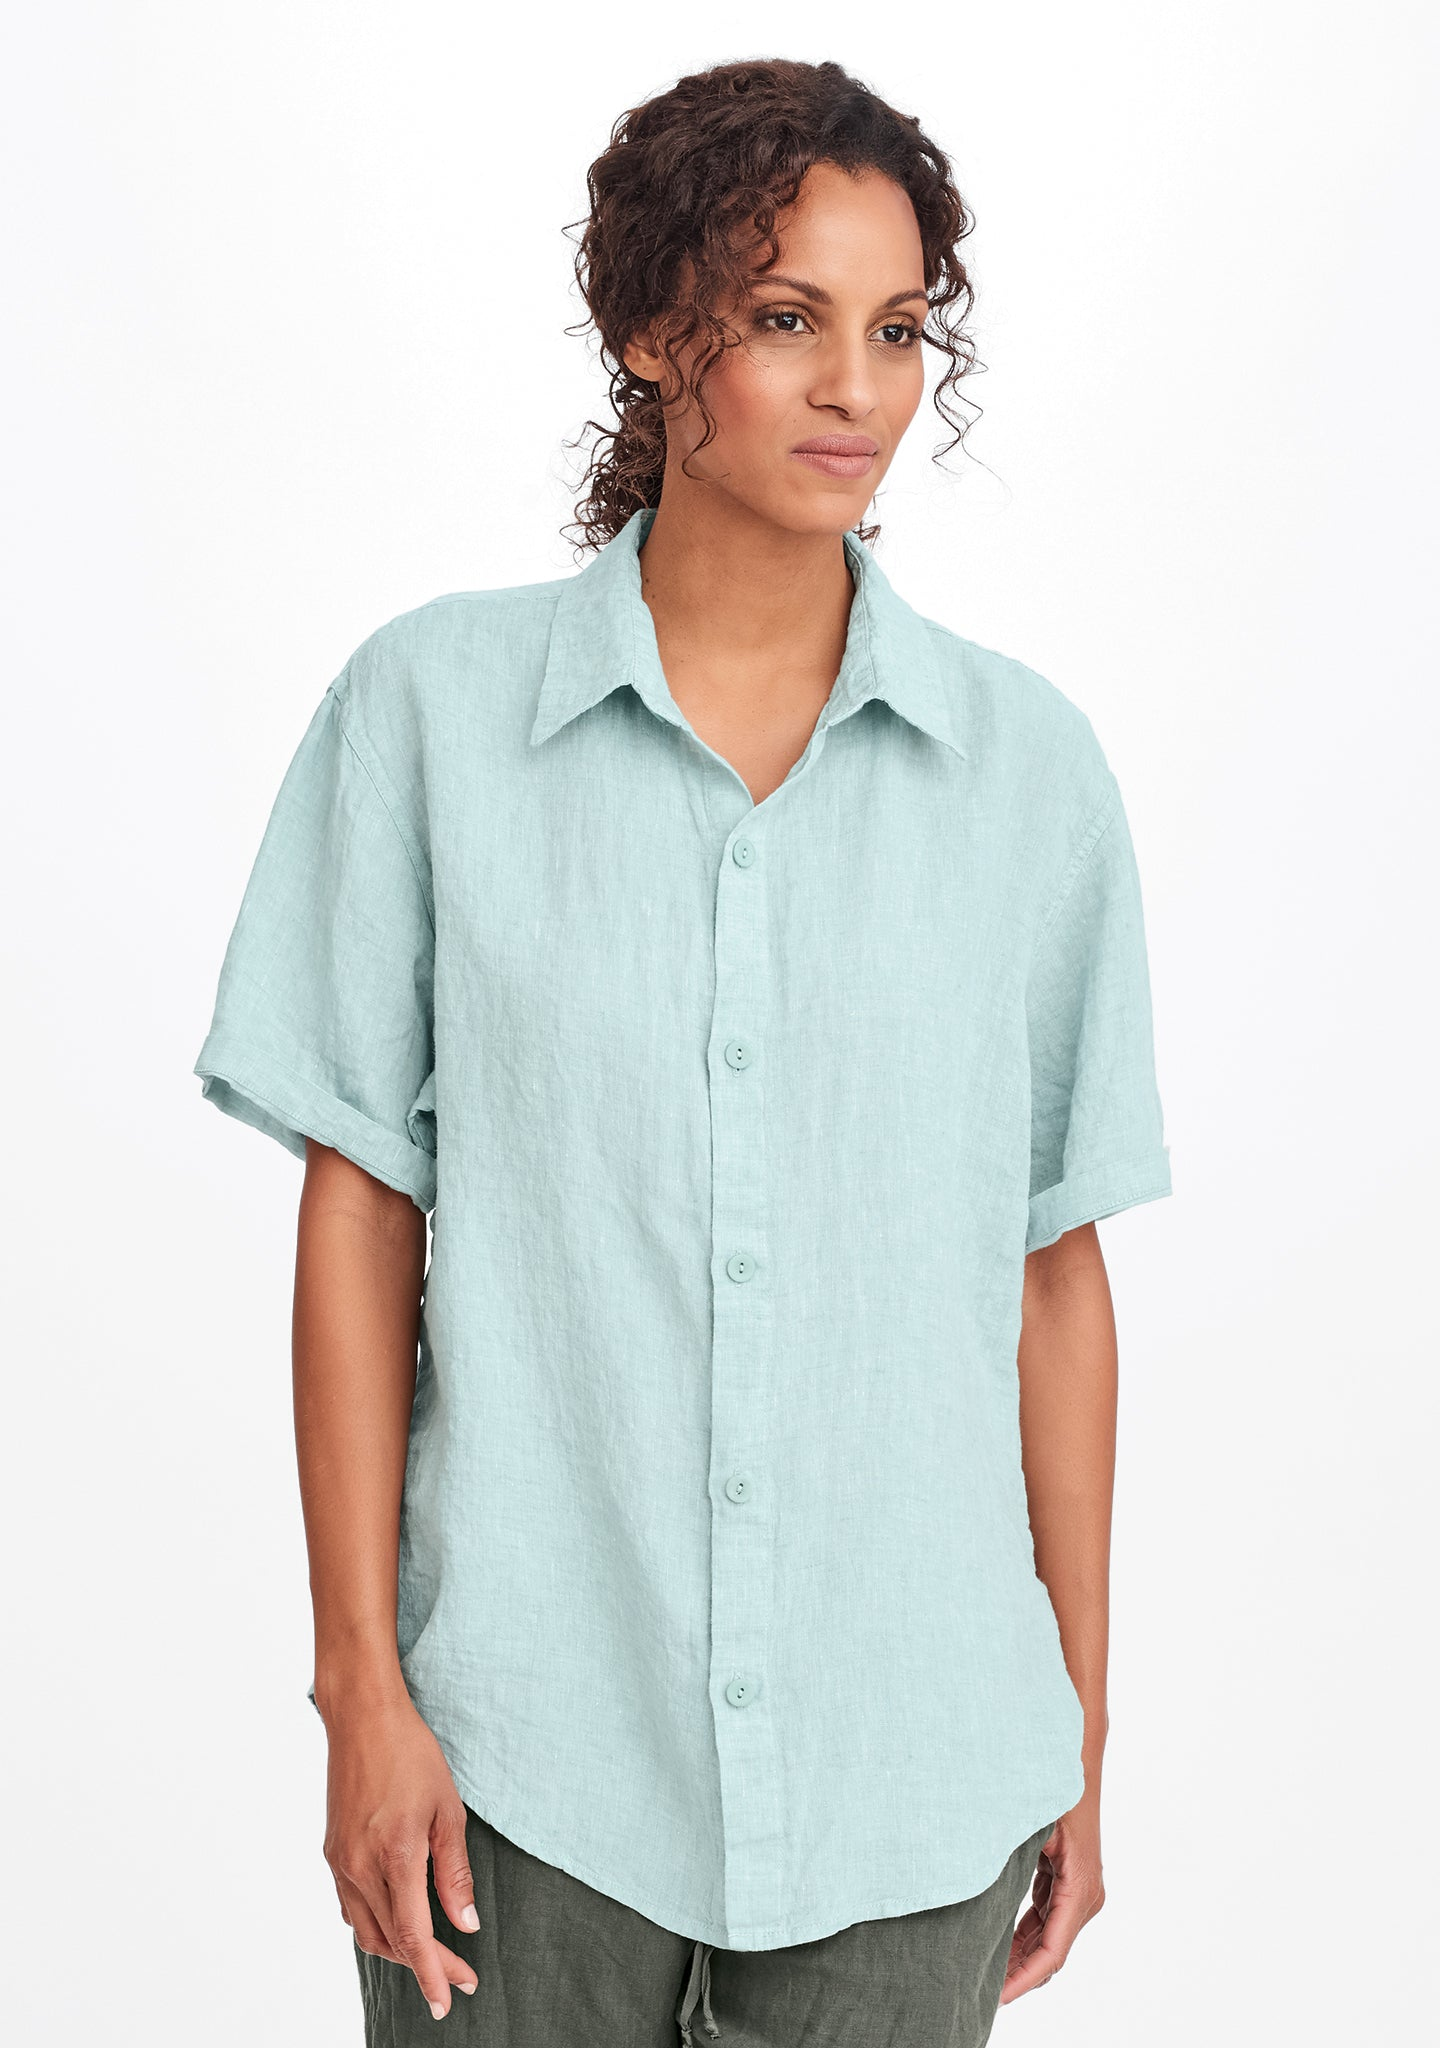 mens short sleeve shirt blue